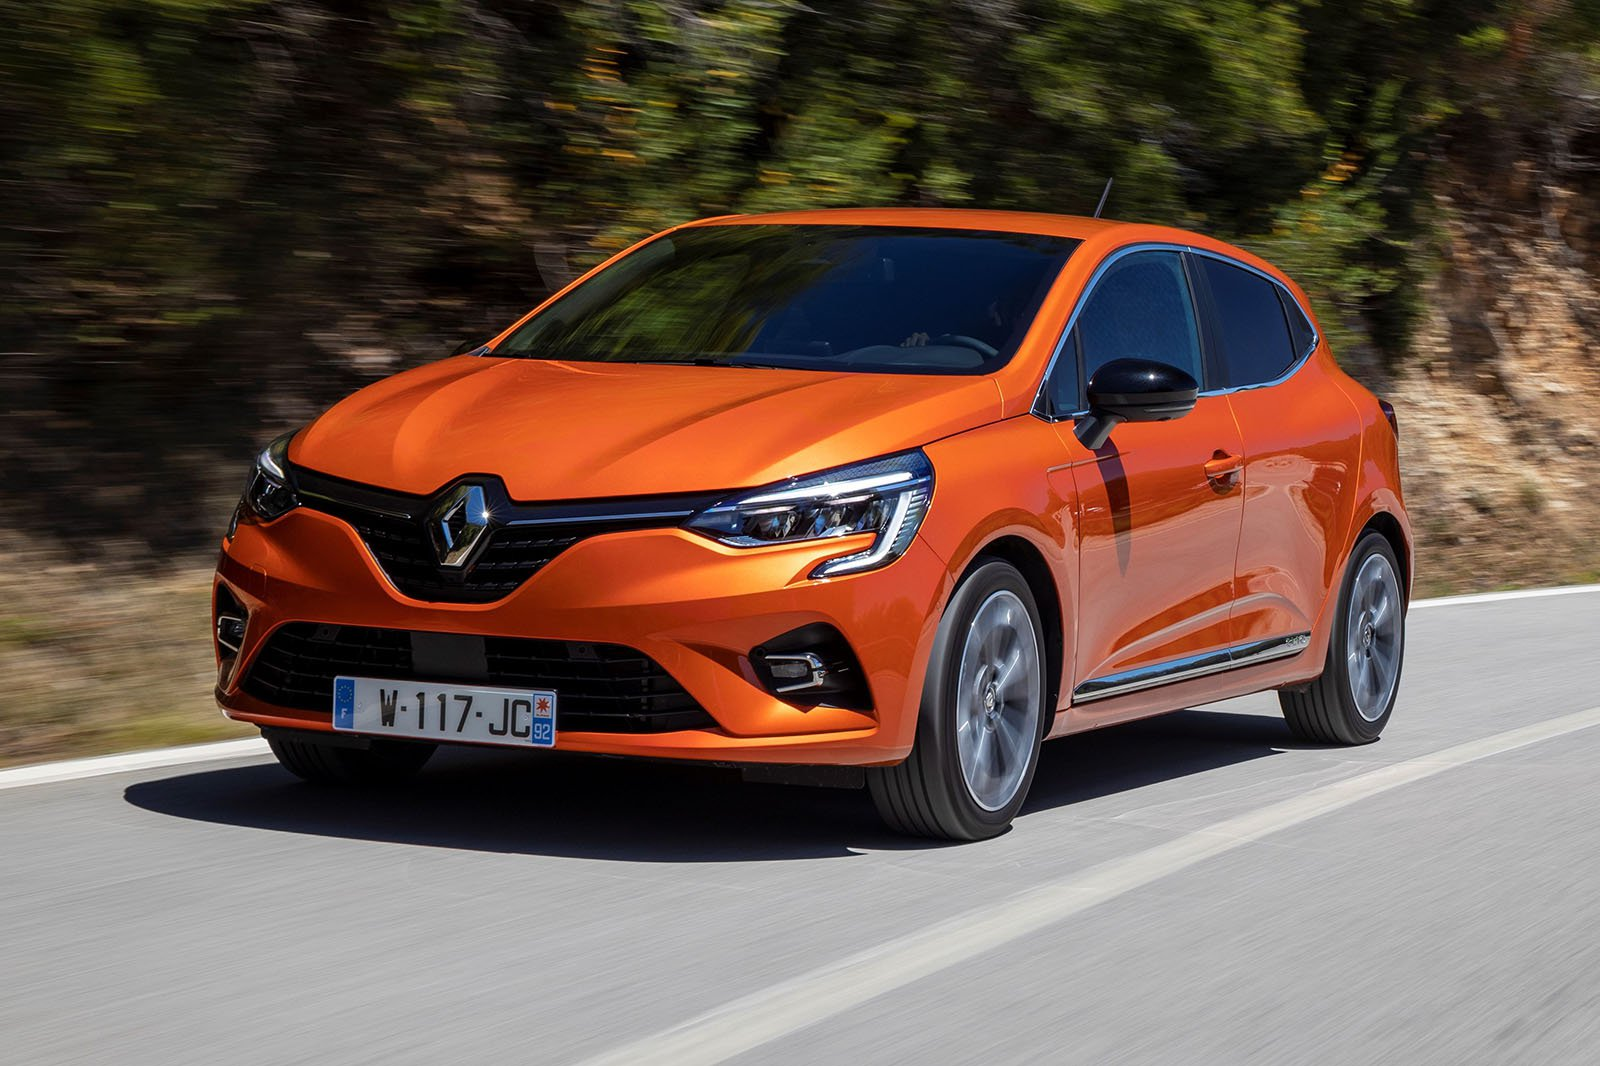 2019 Renault Clio TCe 100 front three quarter